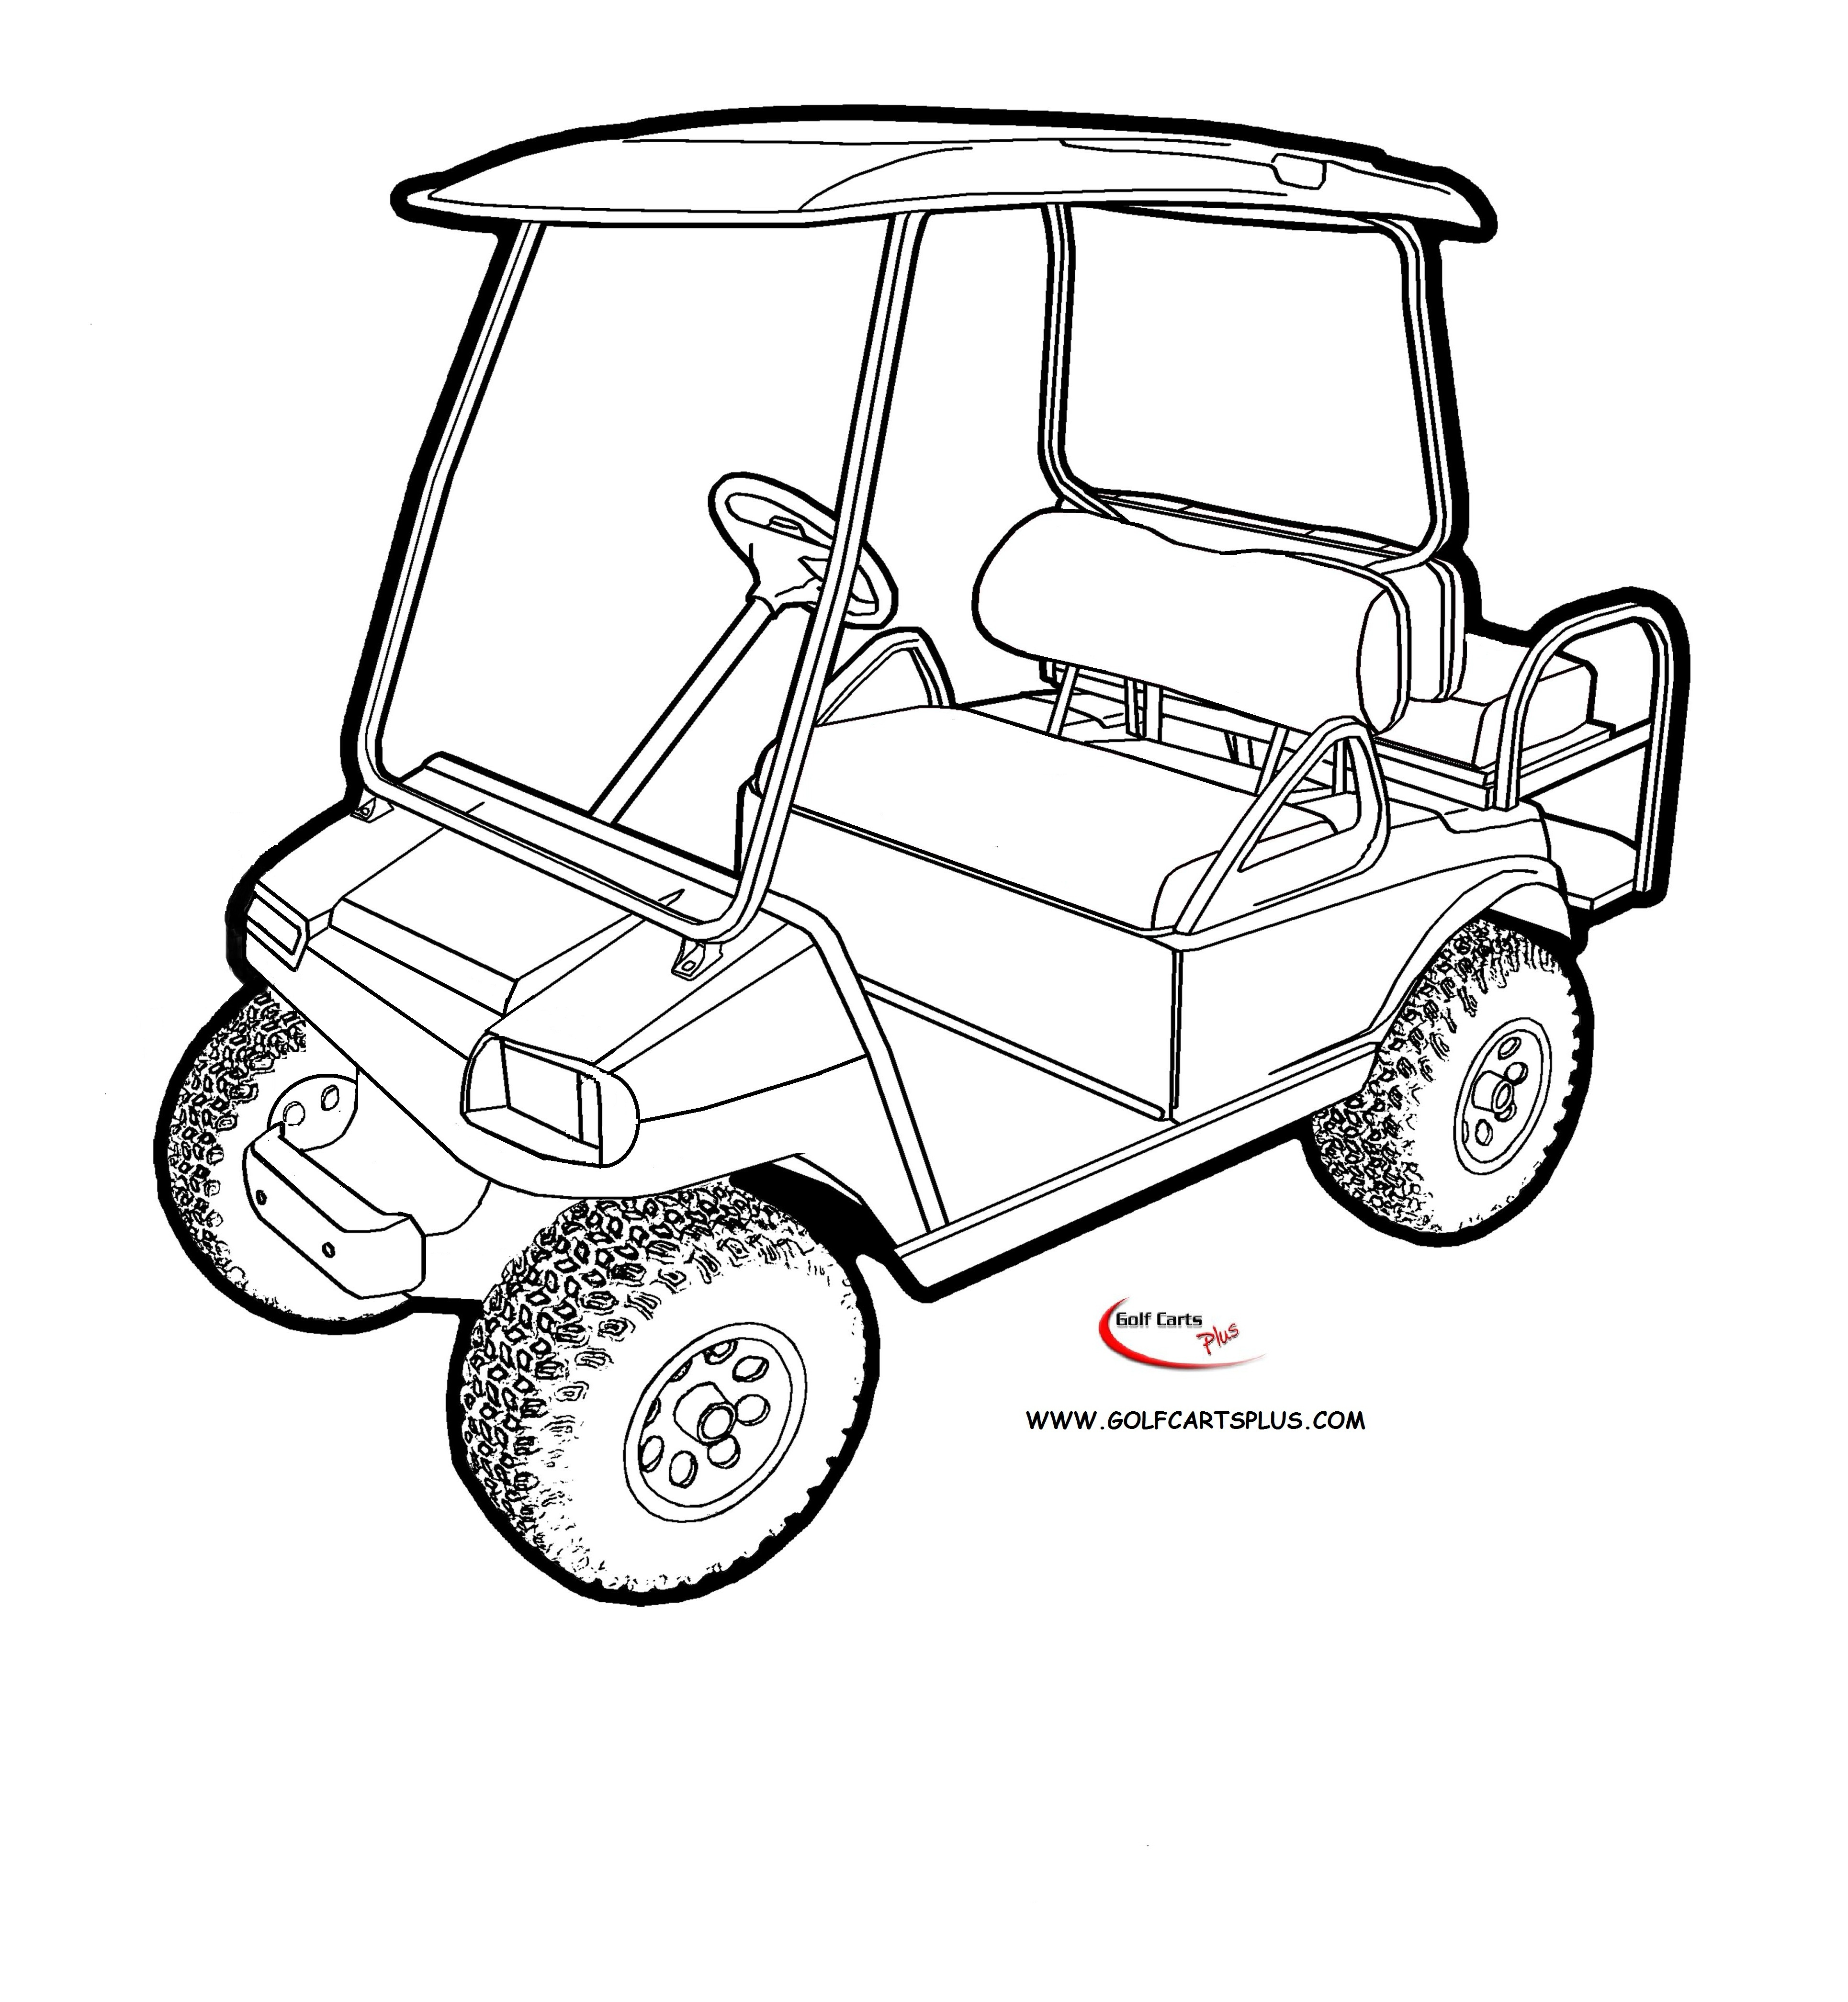 Image Result For Golf Carts